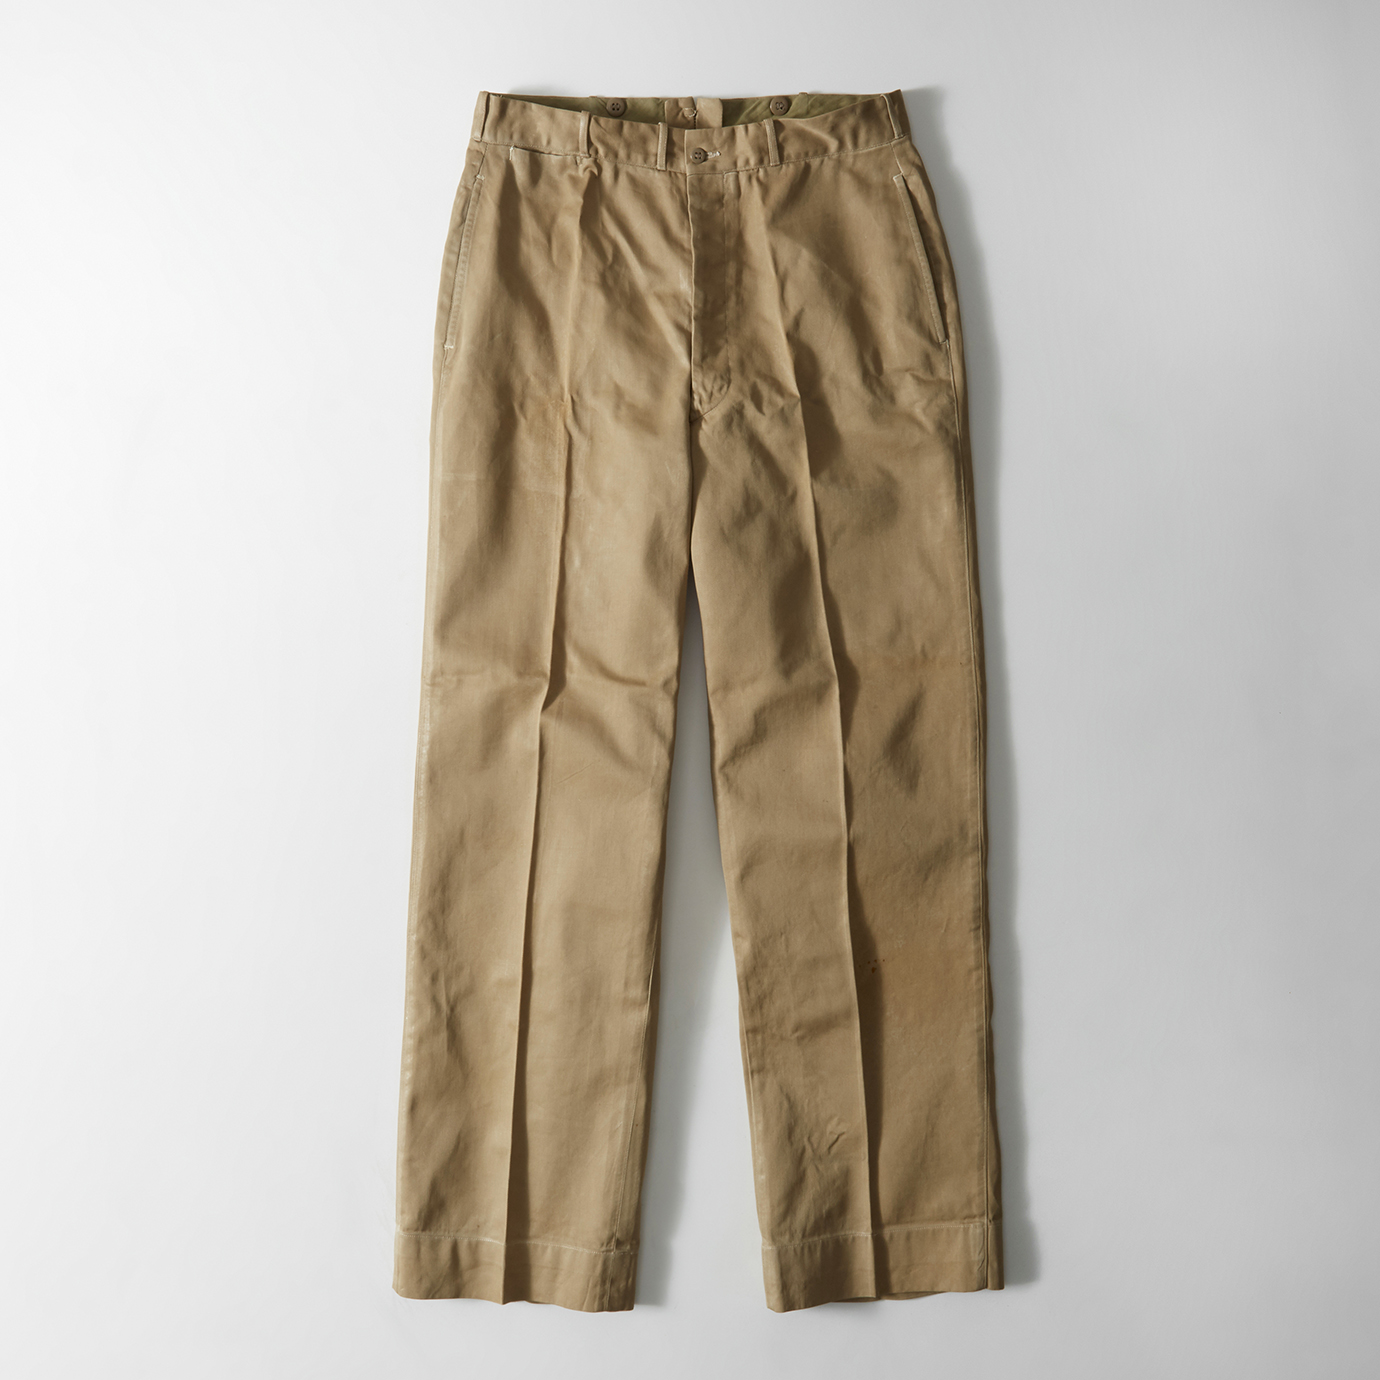 The Kennan Straight chinos, inspired by a pair of Abercrombie trousers worn by President John F. Kennedy.